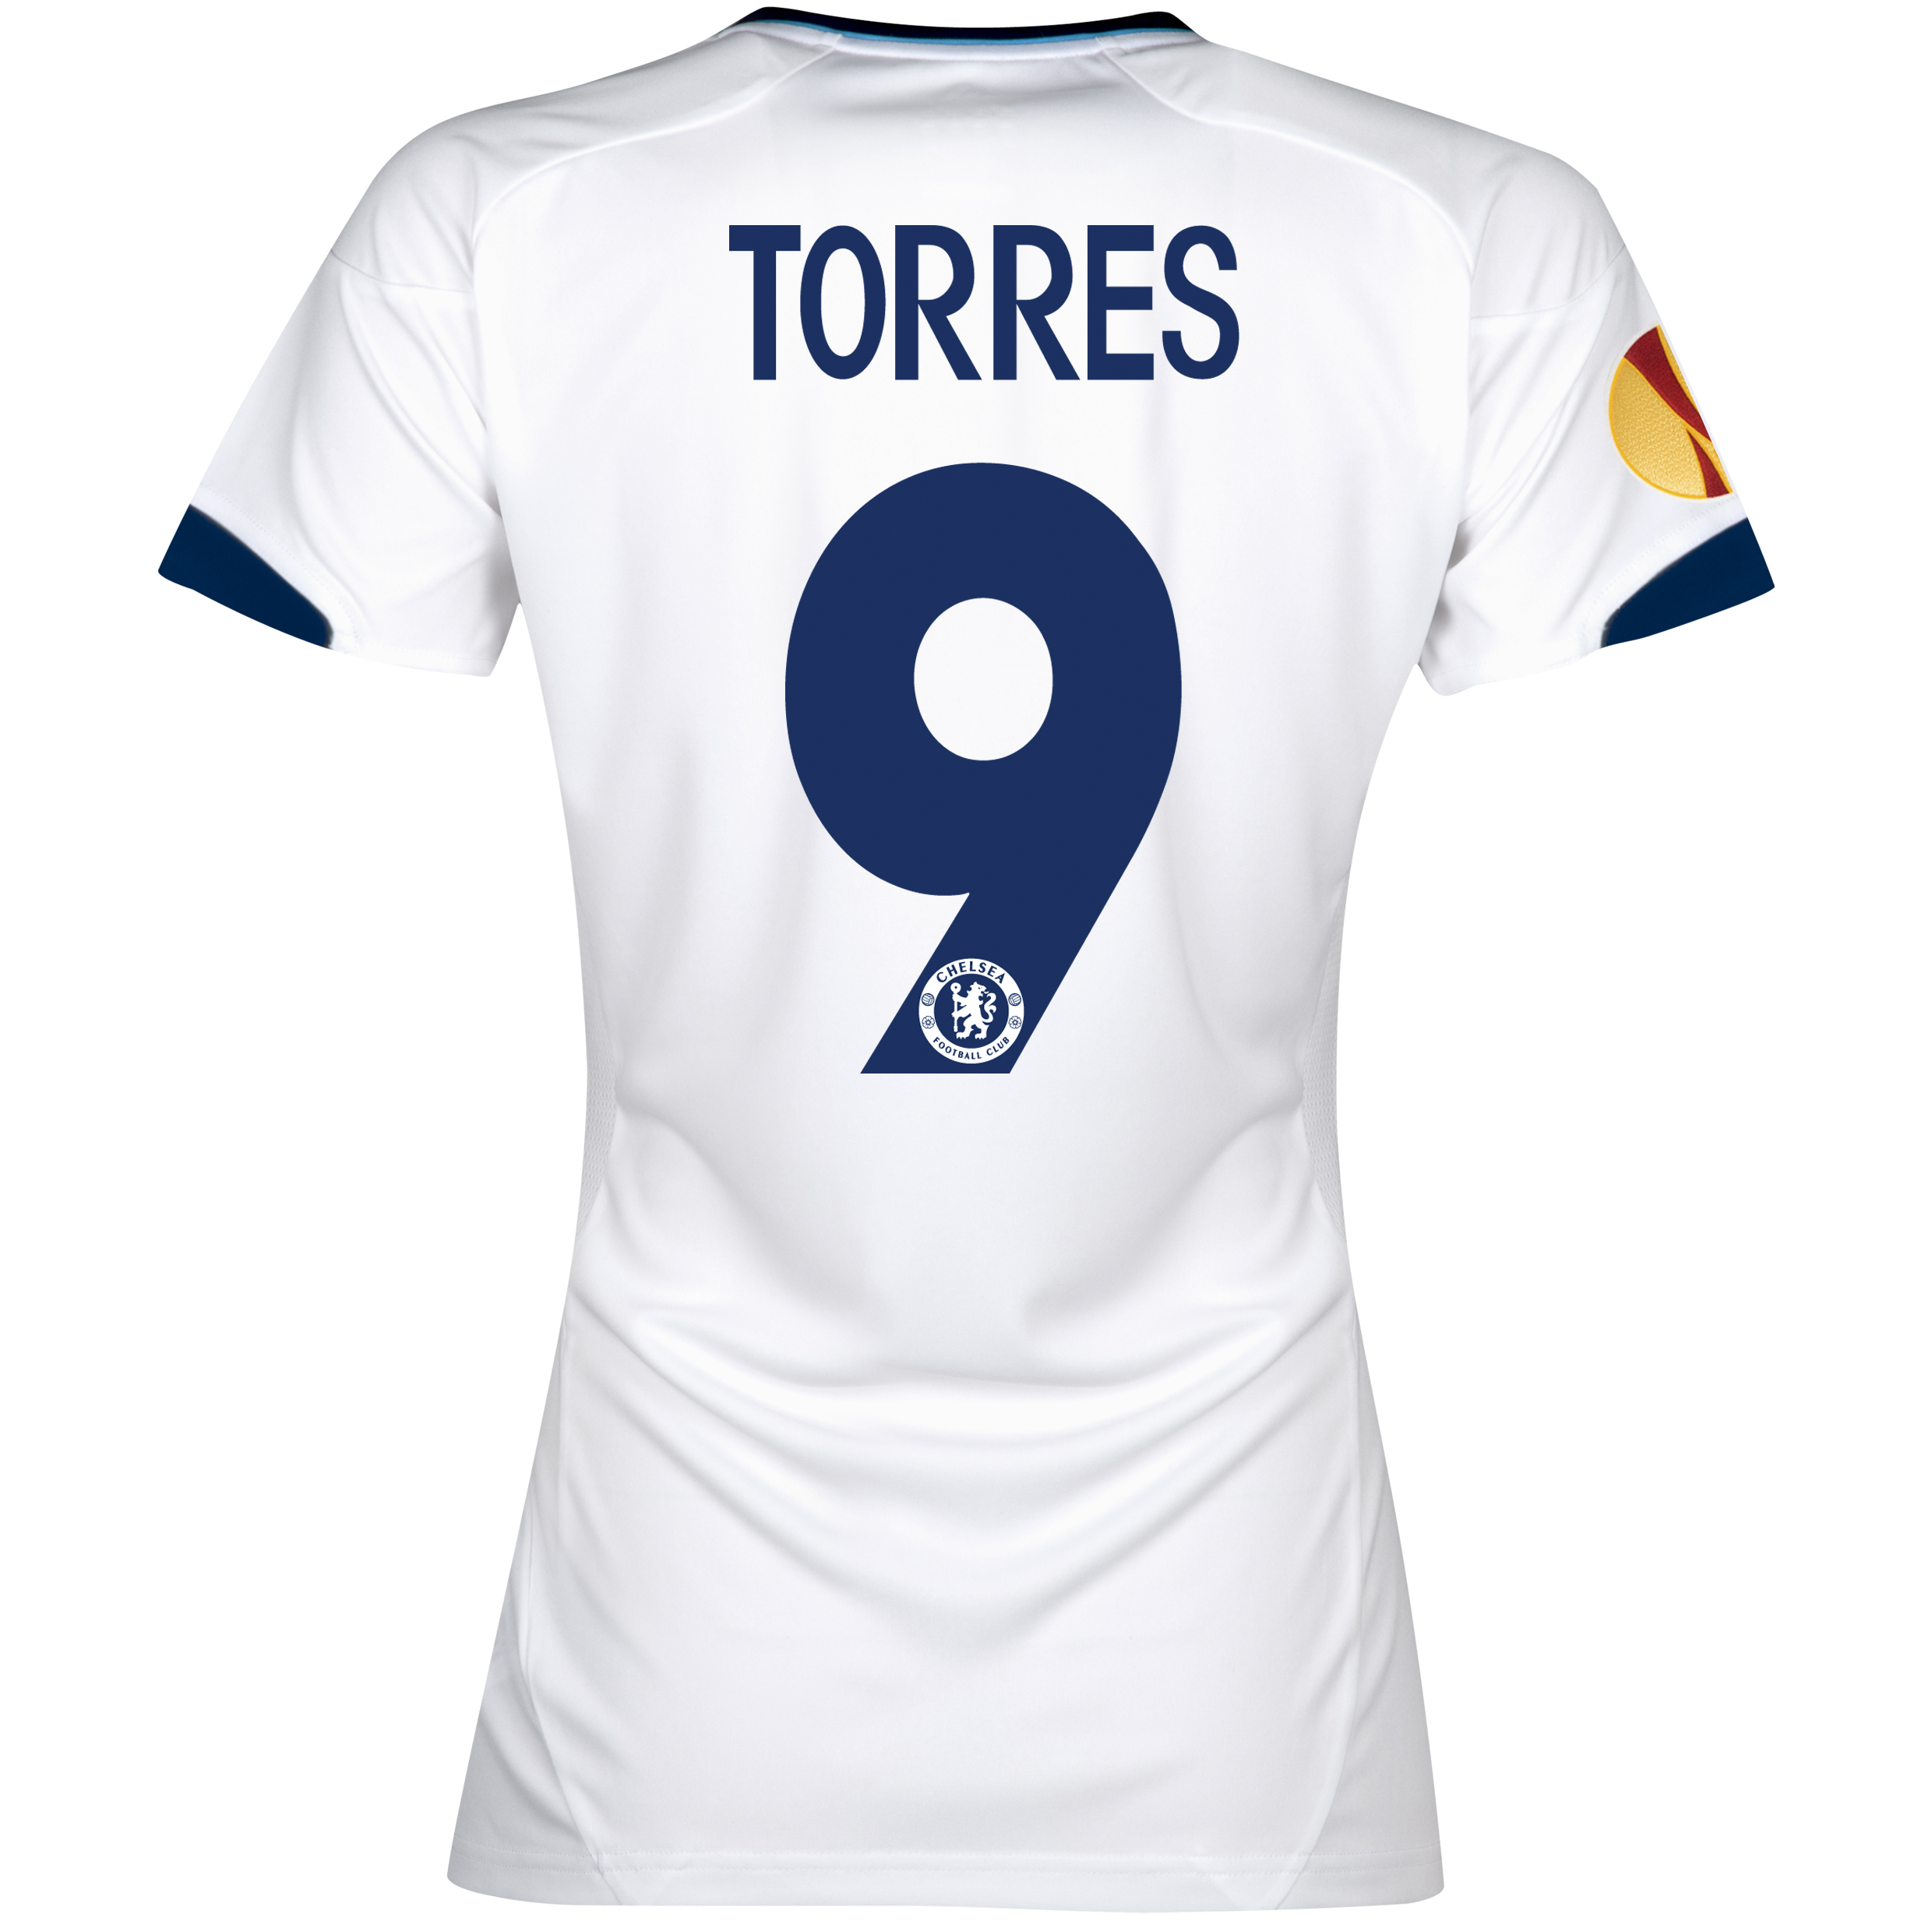 Chelsea UEFA Europa League Away Shirt 2012/13 - Womens with Torres 9 printing Including Europa Badge